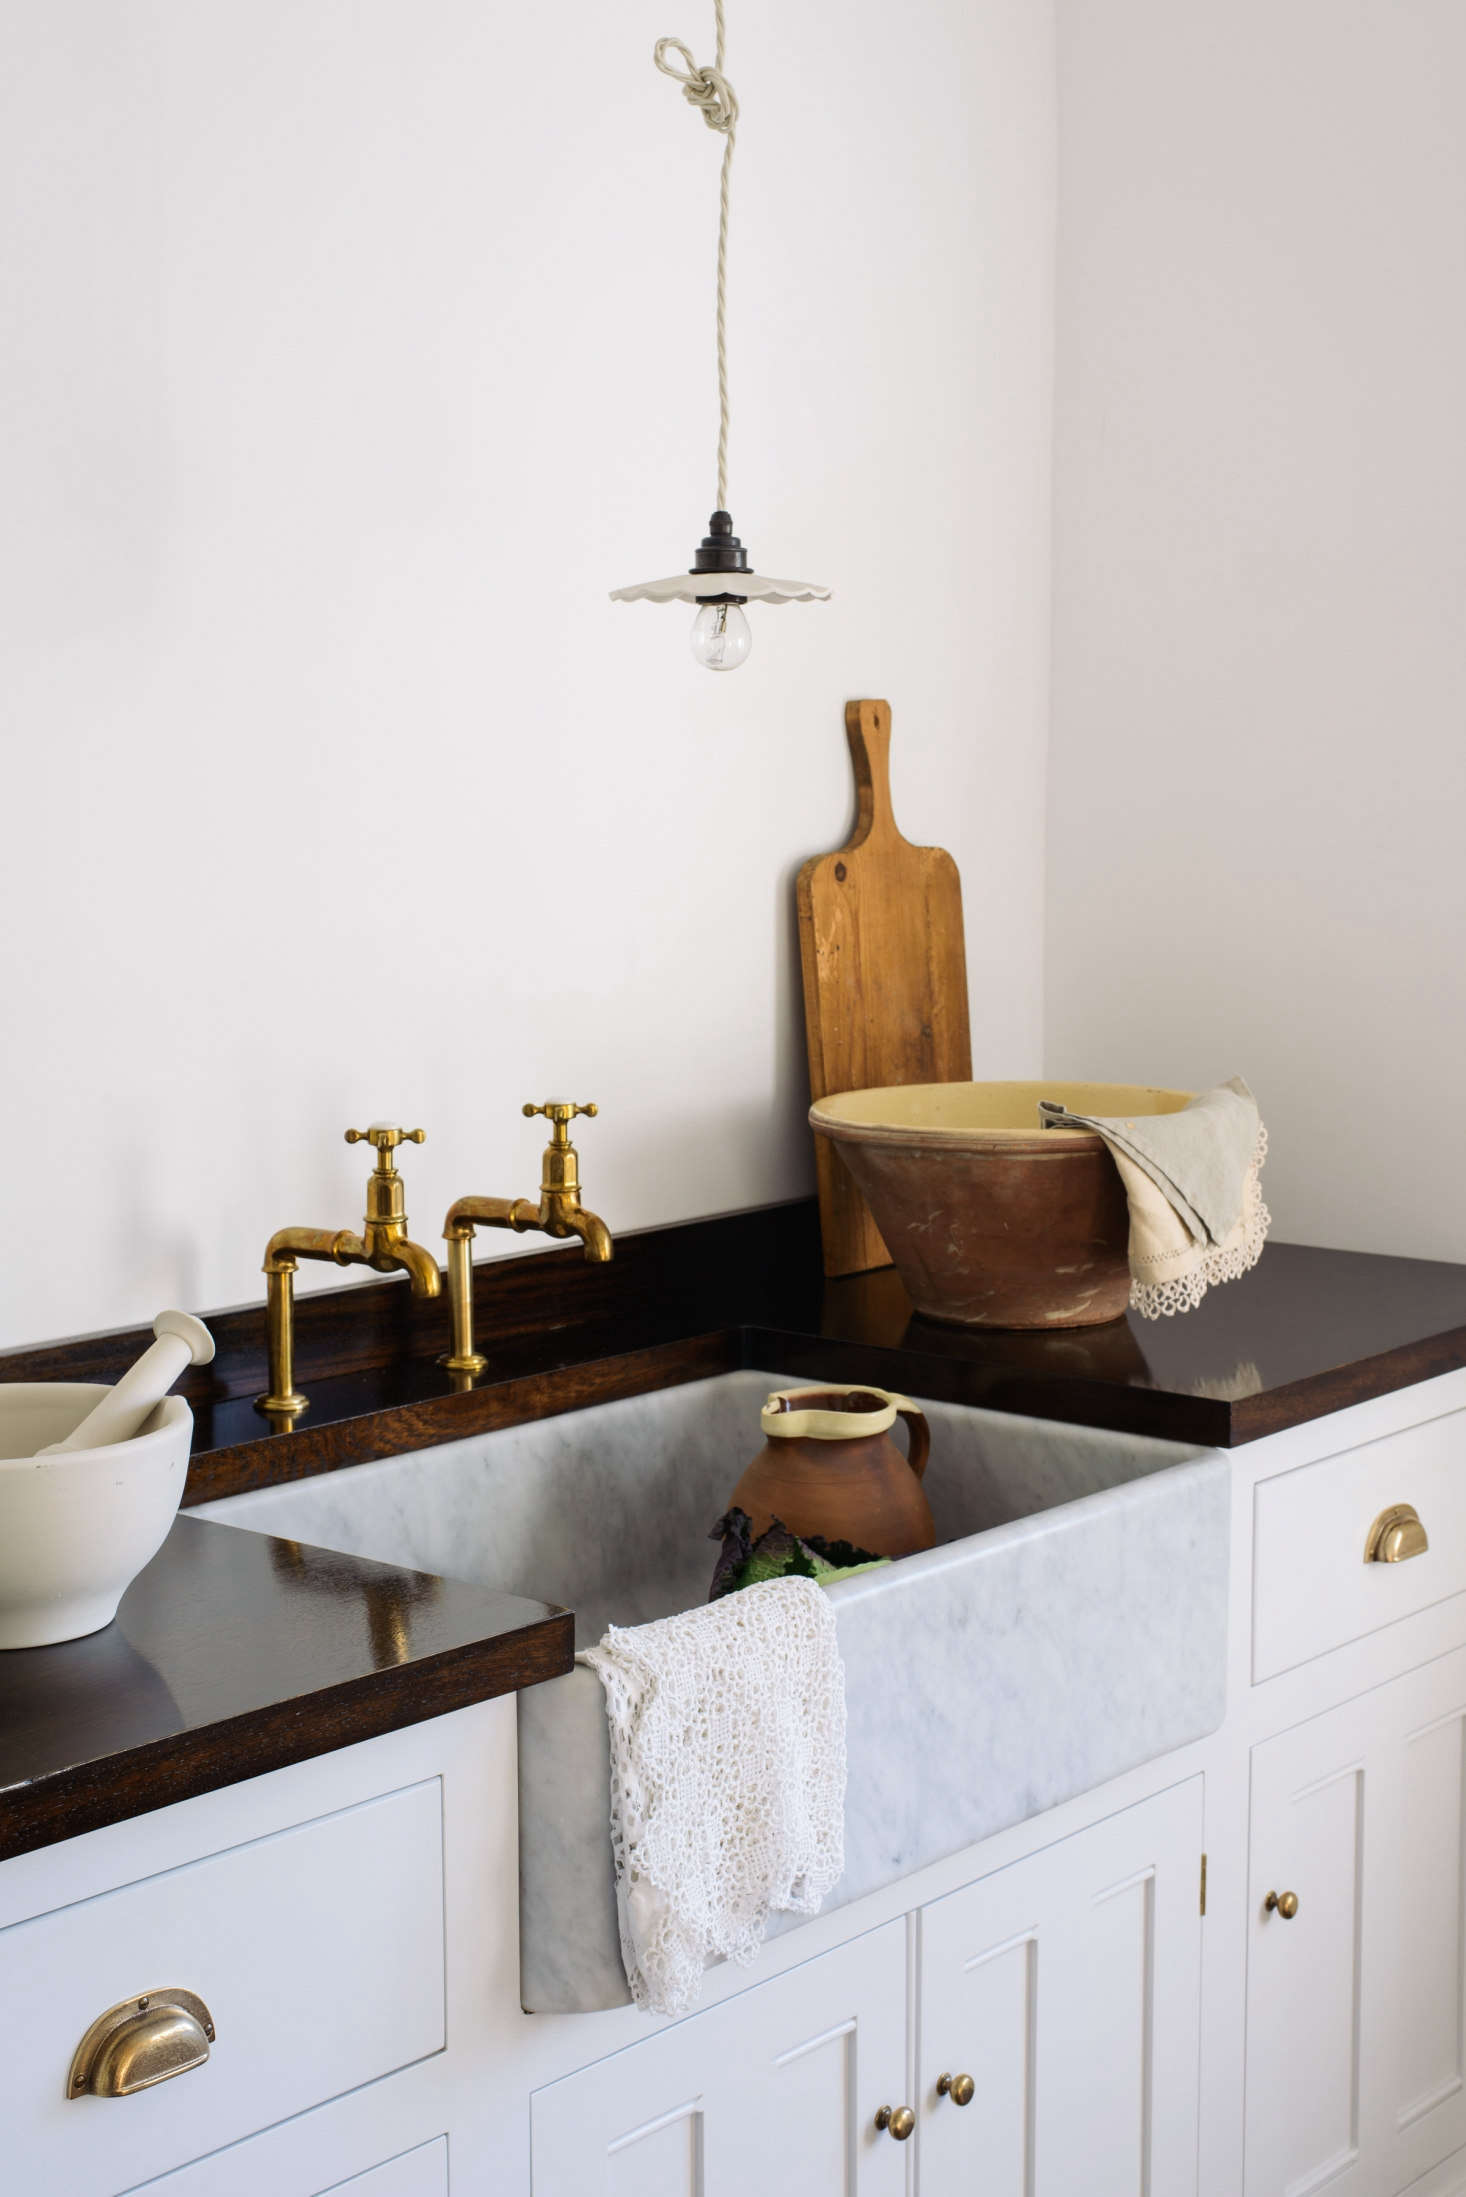 The sinks have a  to 30mm wall thickness all around. Shown here is the Tuscan sink with a 30mm wall thickness.